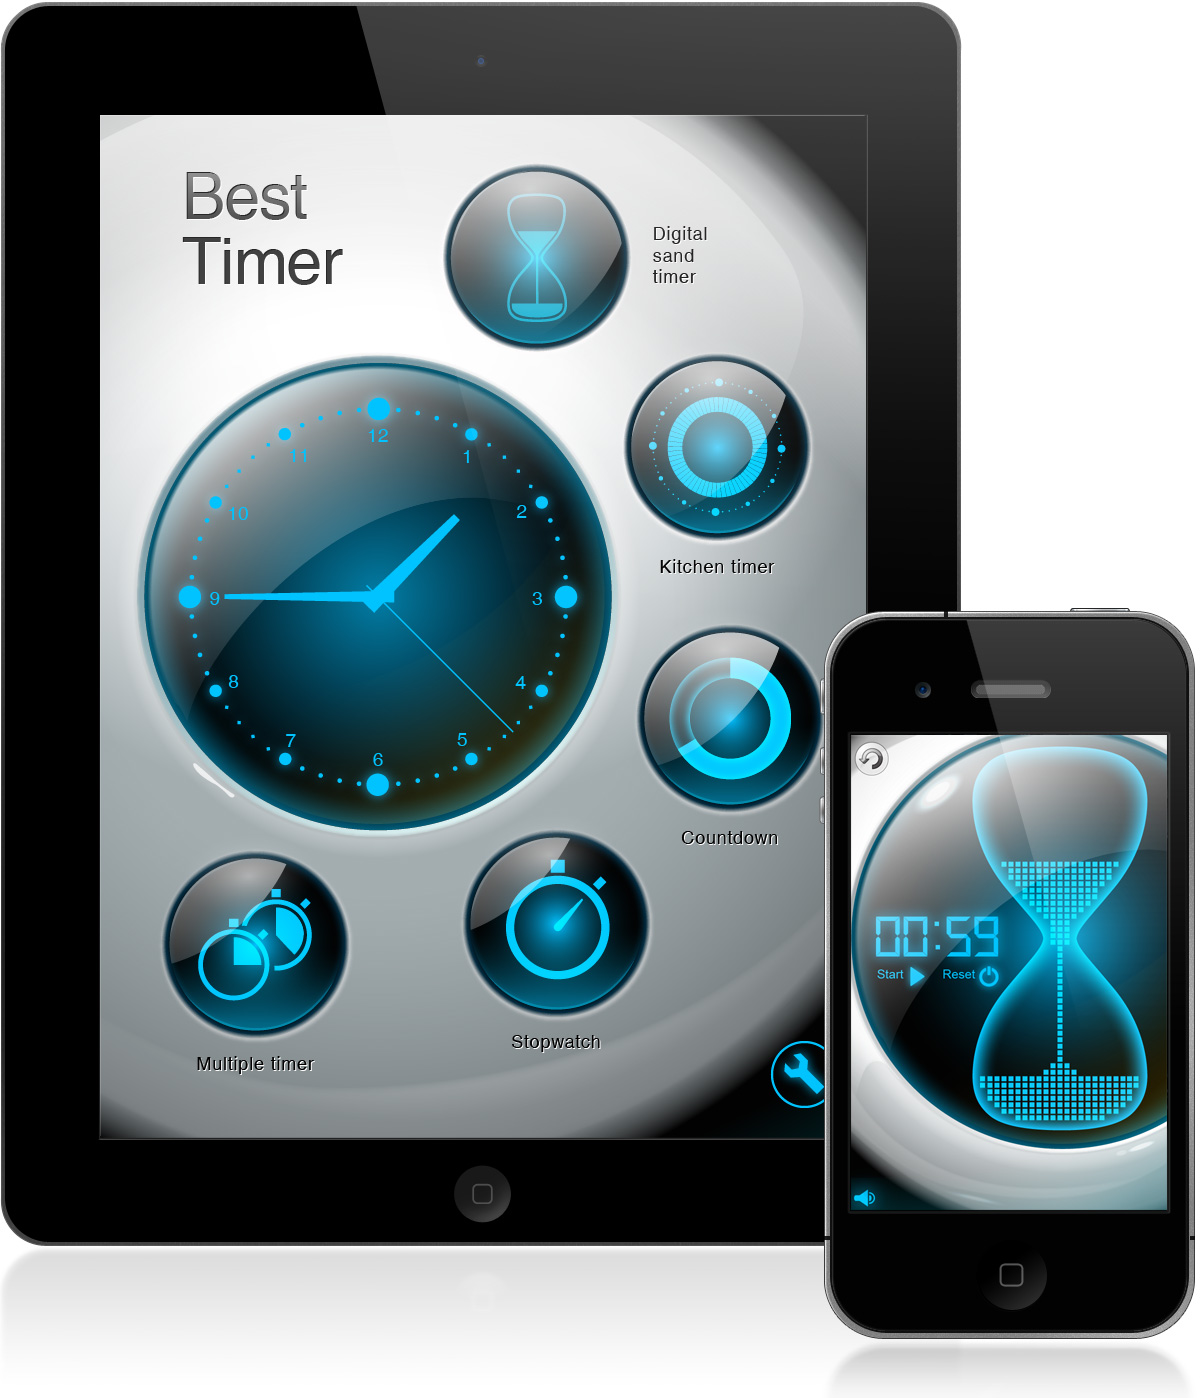 Ui Design For Iphone Ipad Best Timer